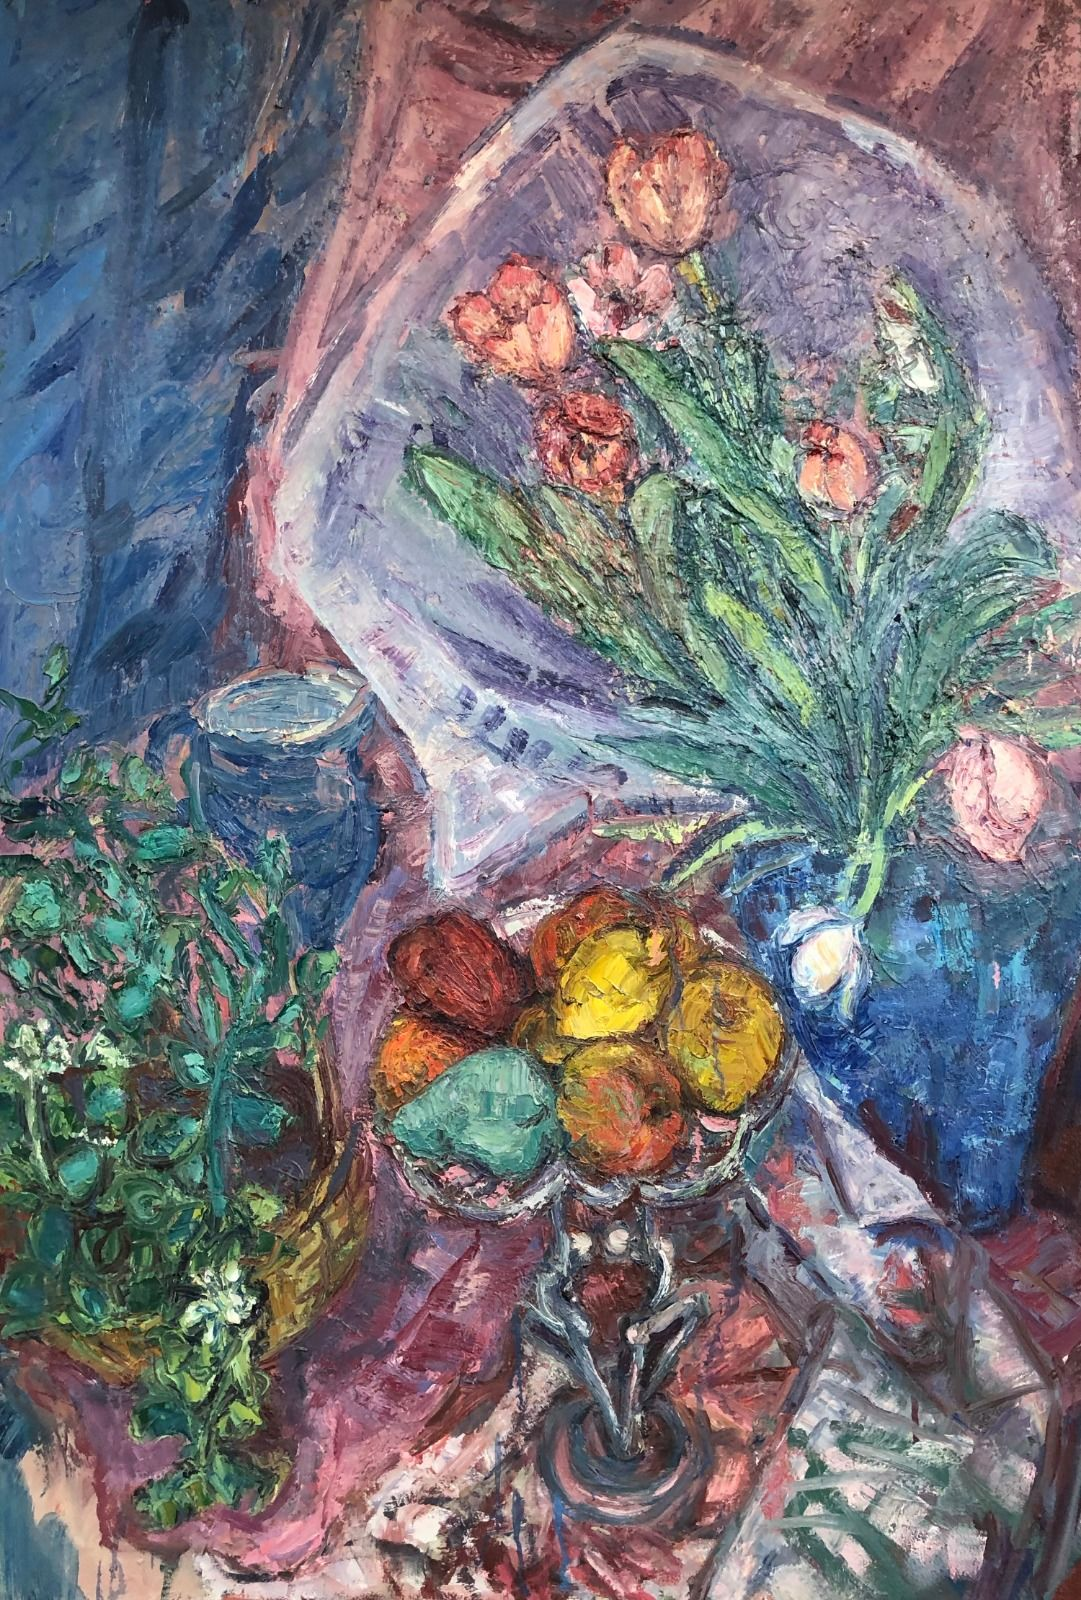 Friut & Tulips in a Sellophane Wrapper. 50in x 34in